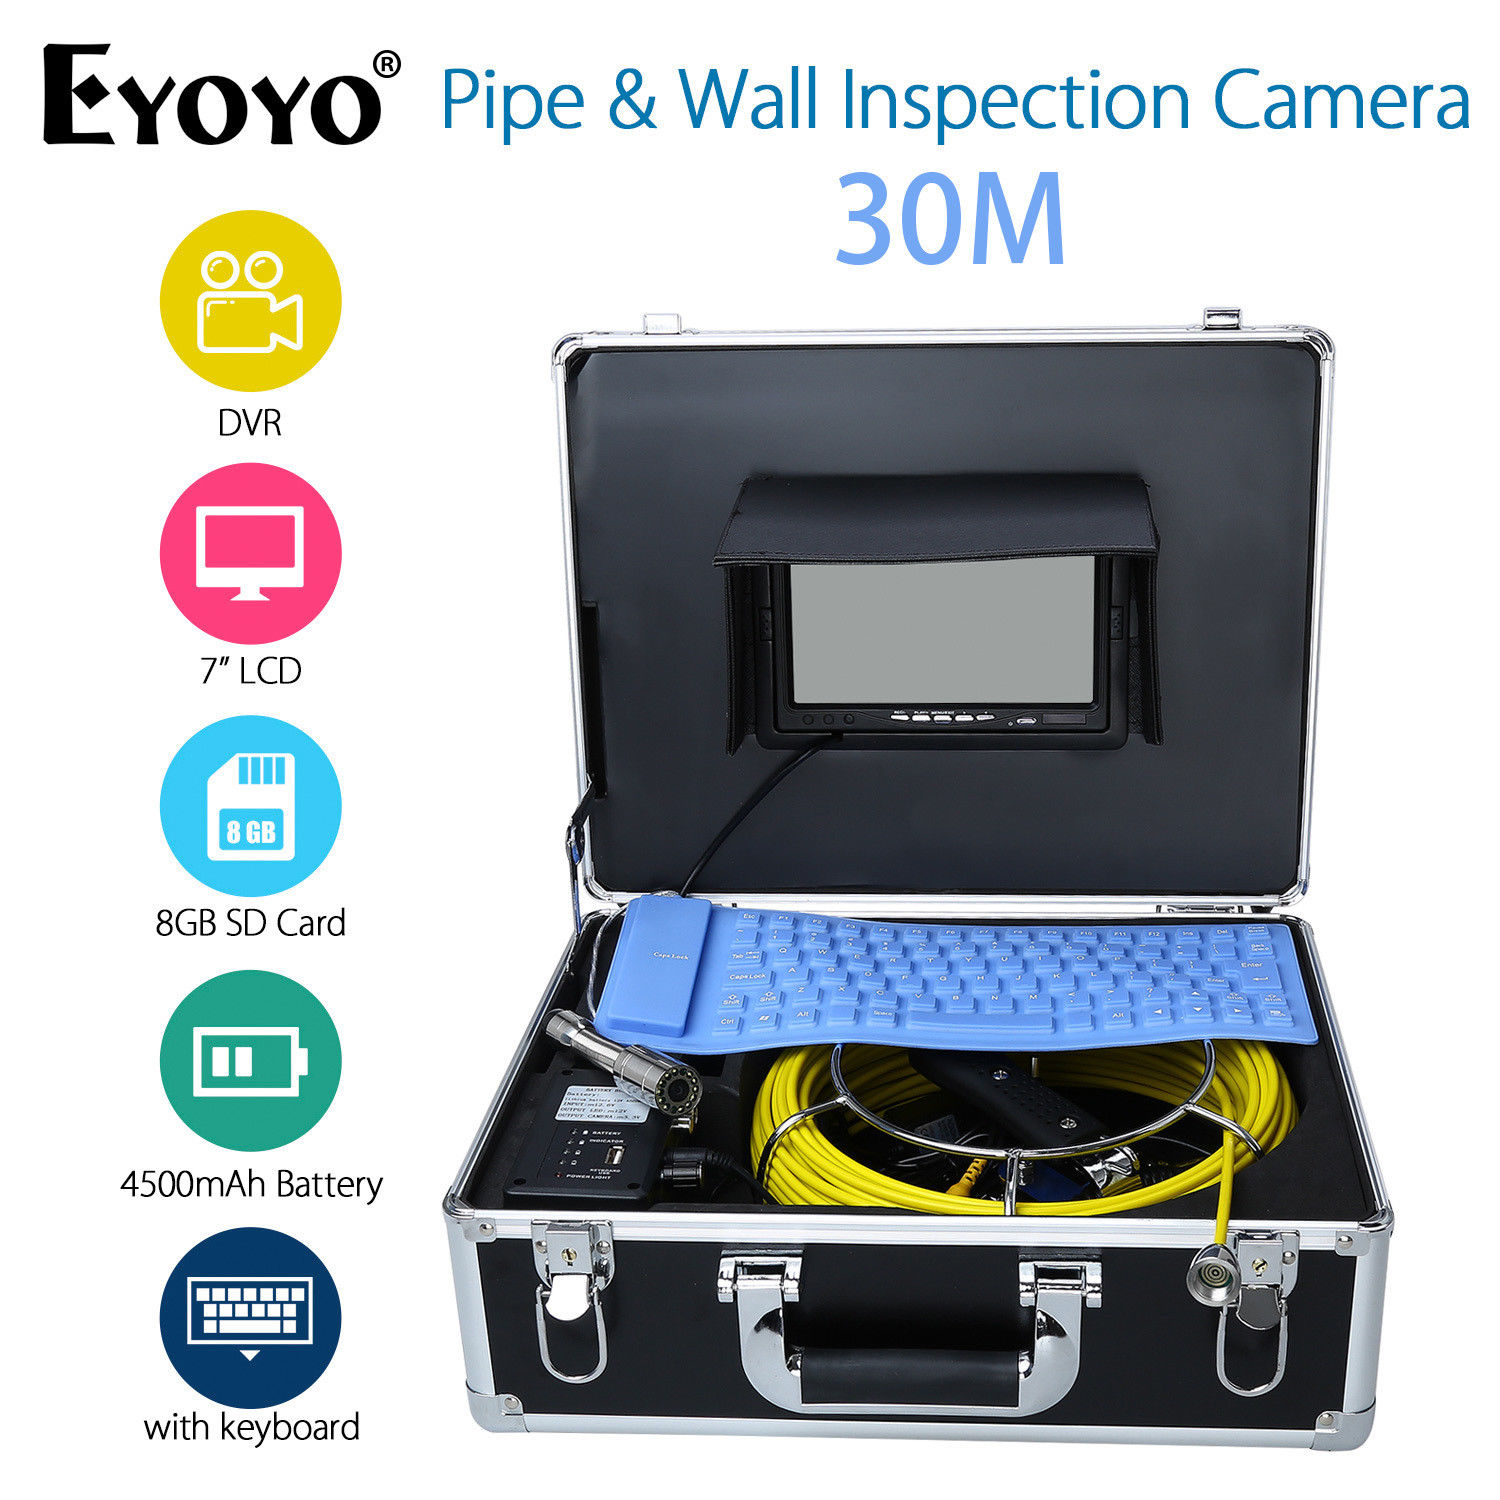 EYOYO 7 LCD Screen DVR 30M HD 1000TVL Sewer Drain Camera Pipe Wall Inspection Endoscope Video Recorder With Keyboard Recording eyoyo 7 lcd screen 20m 800 480 1000tvl 4500mah sewer drain camera pipe wall inspection endoscope w keyboard dvr recording 8gb